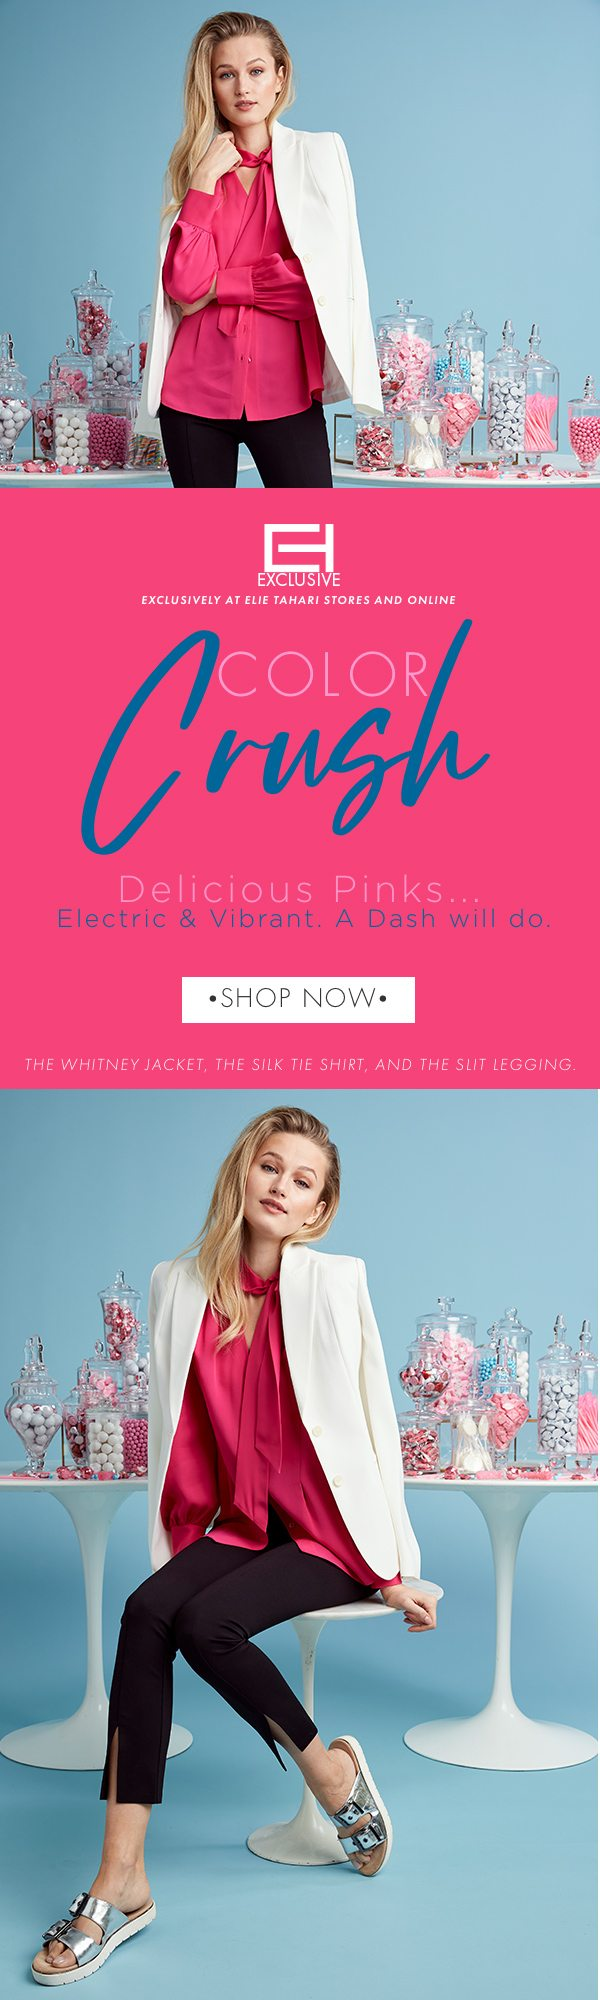 Color Crush - Delicious Pinks - Electric & Vibrant. A Dash will do.